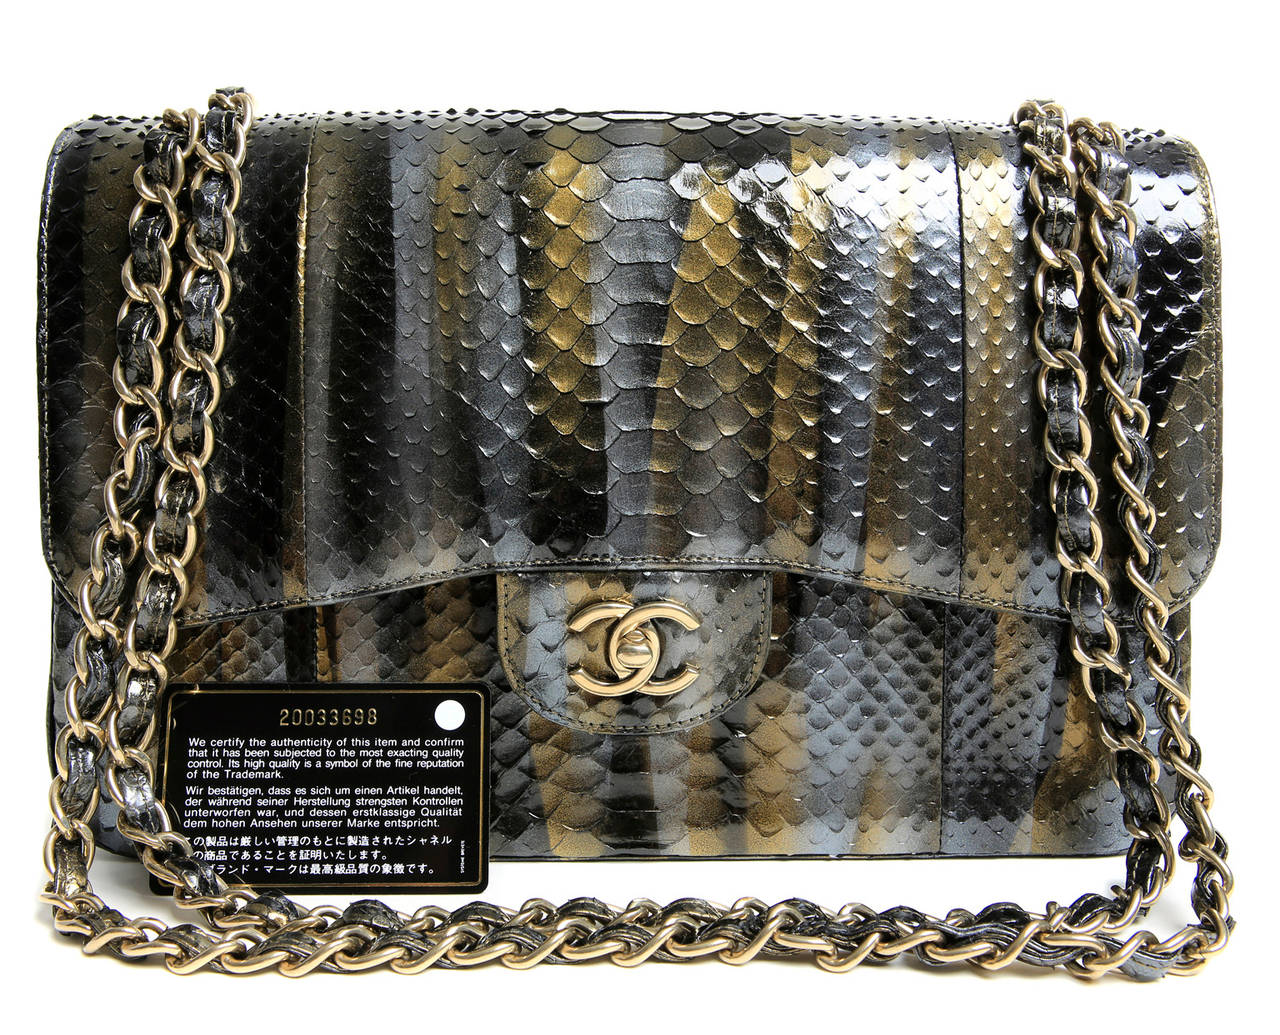 Chanel Jumbo Classic Metallic Python- Double Flap For Sale 5